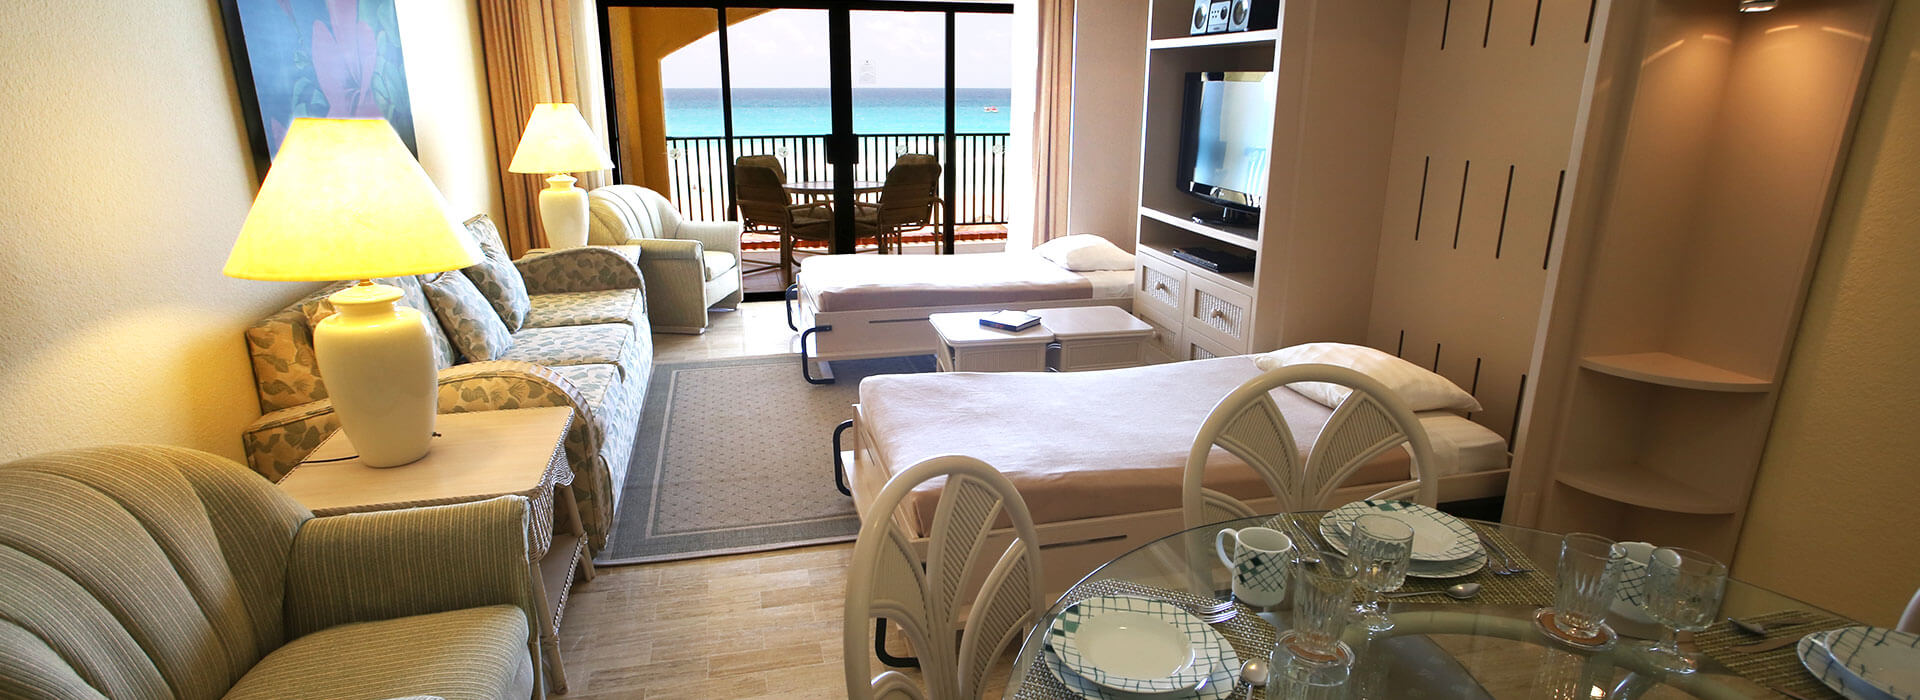 ample suite in Cancun for 4 people